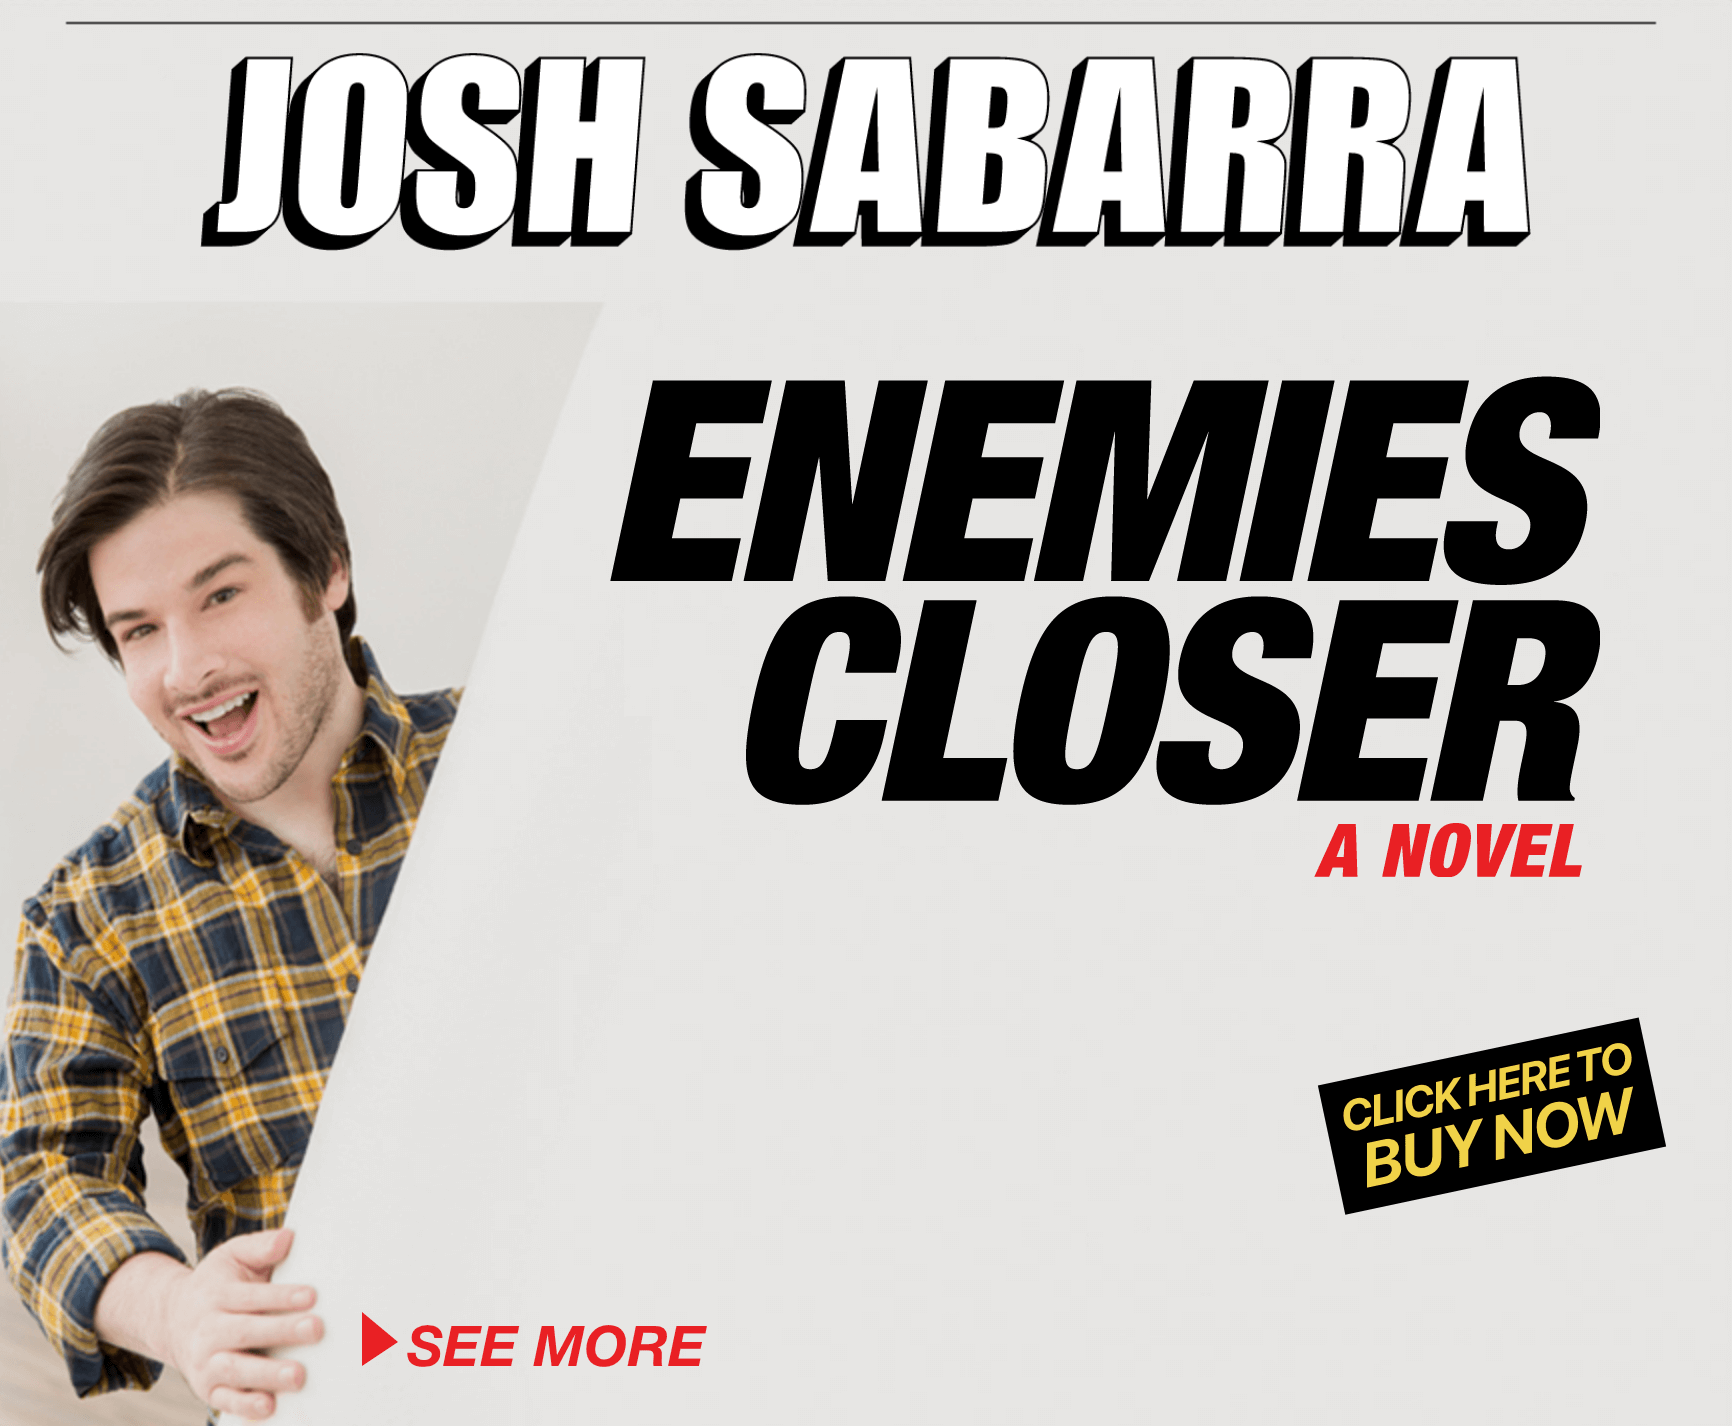 Thumbnail for Josh Sabarra